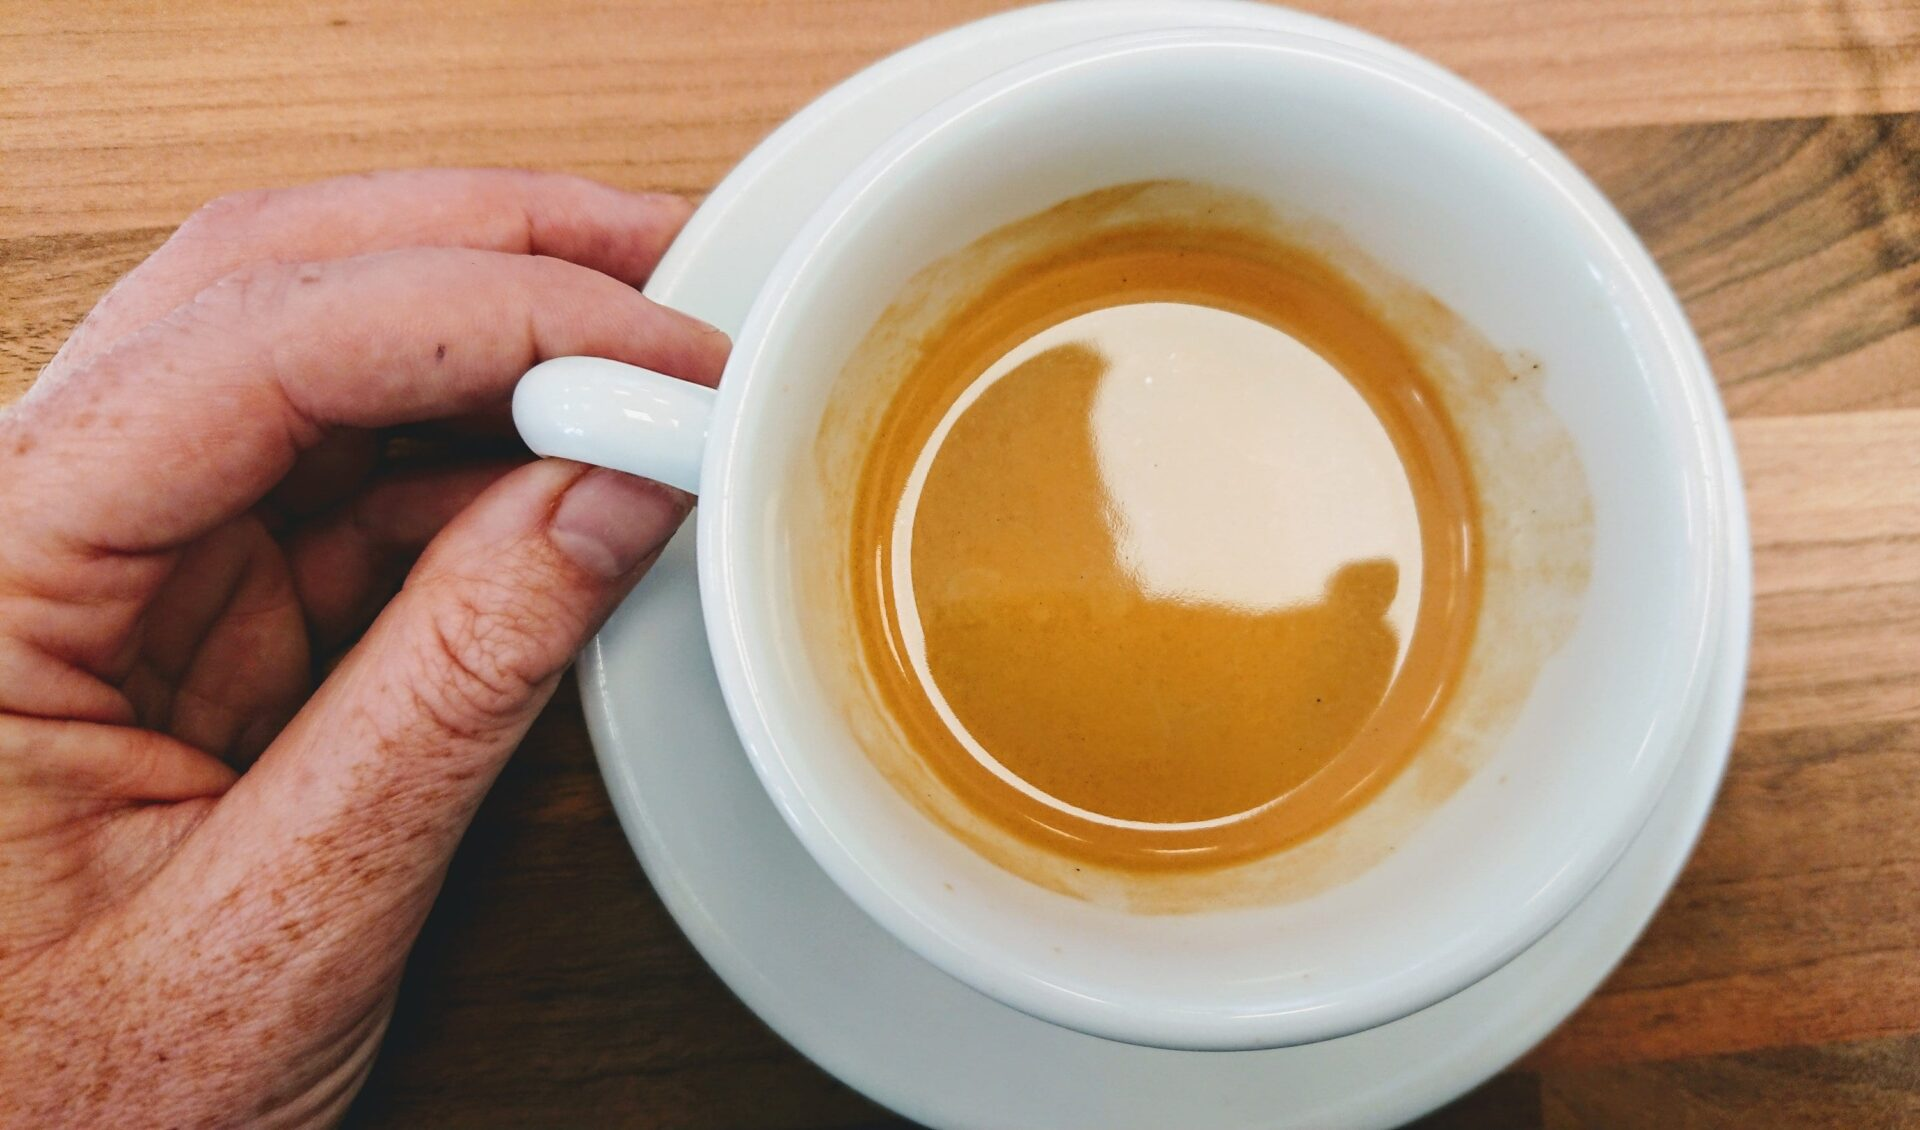 A freckled hand taking hold of an espresso cup handle, light reflecting in the glossy crema.. Featued in the post The dance we must do